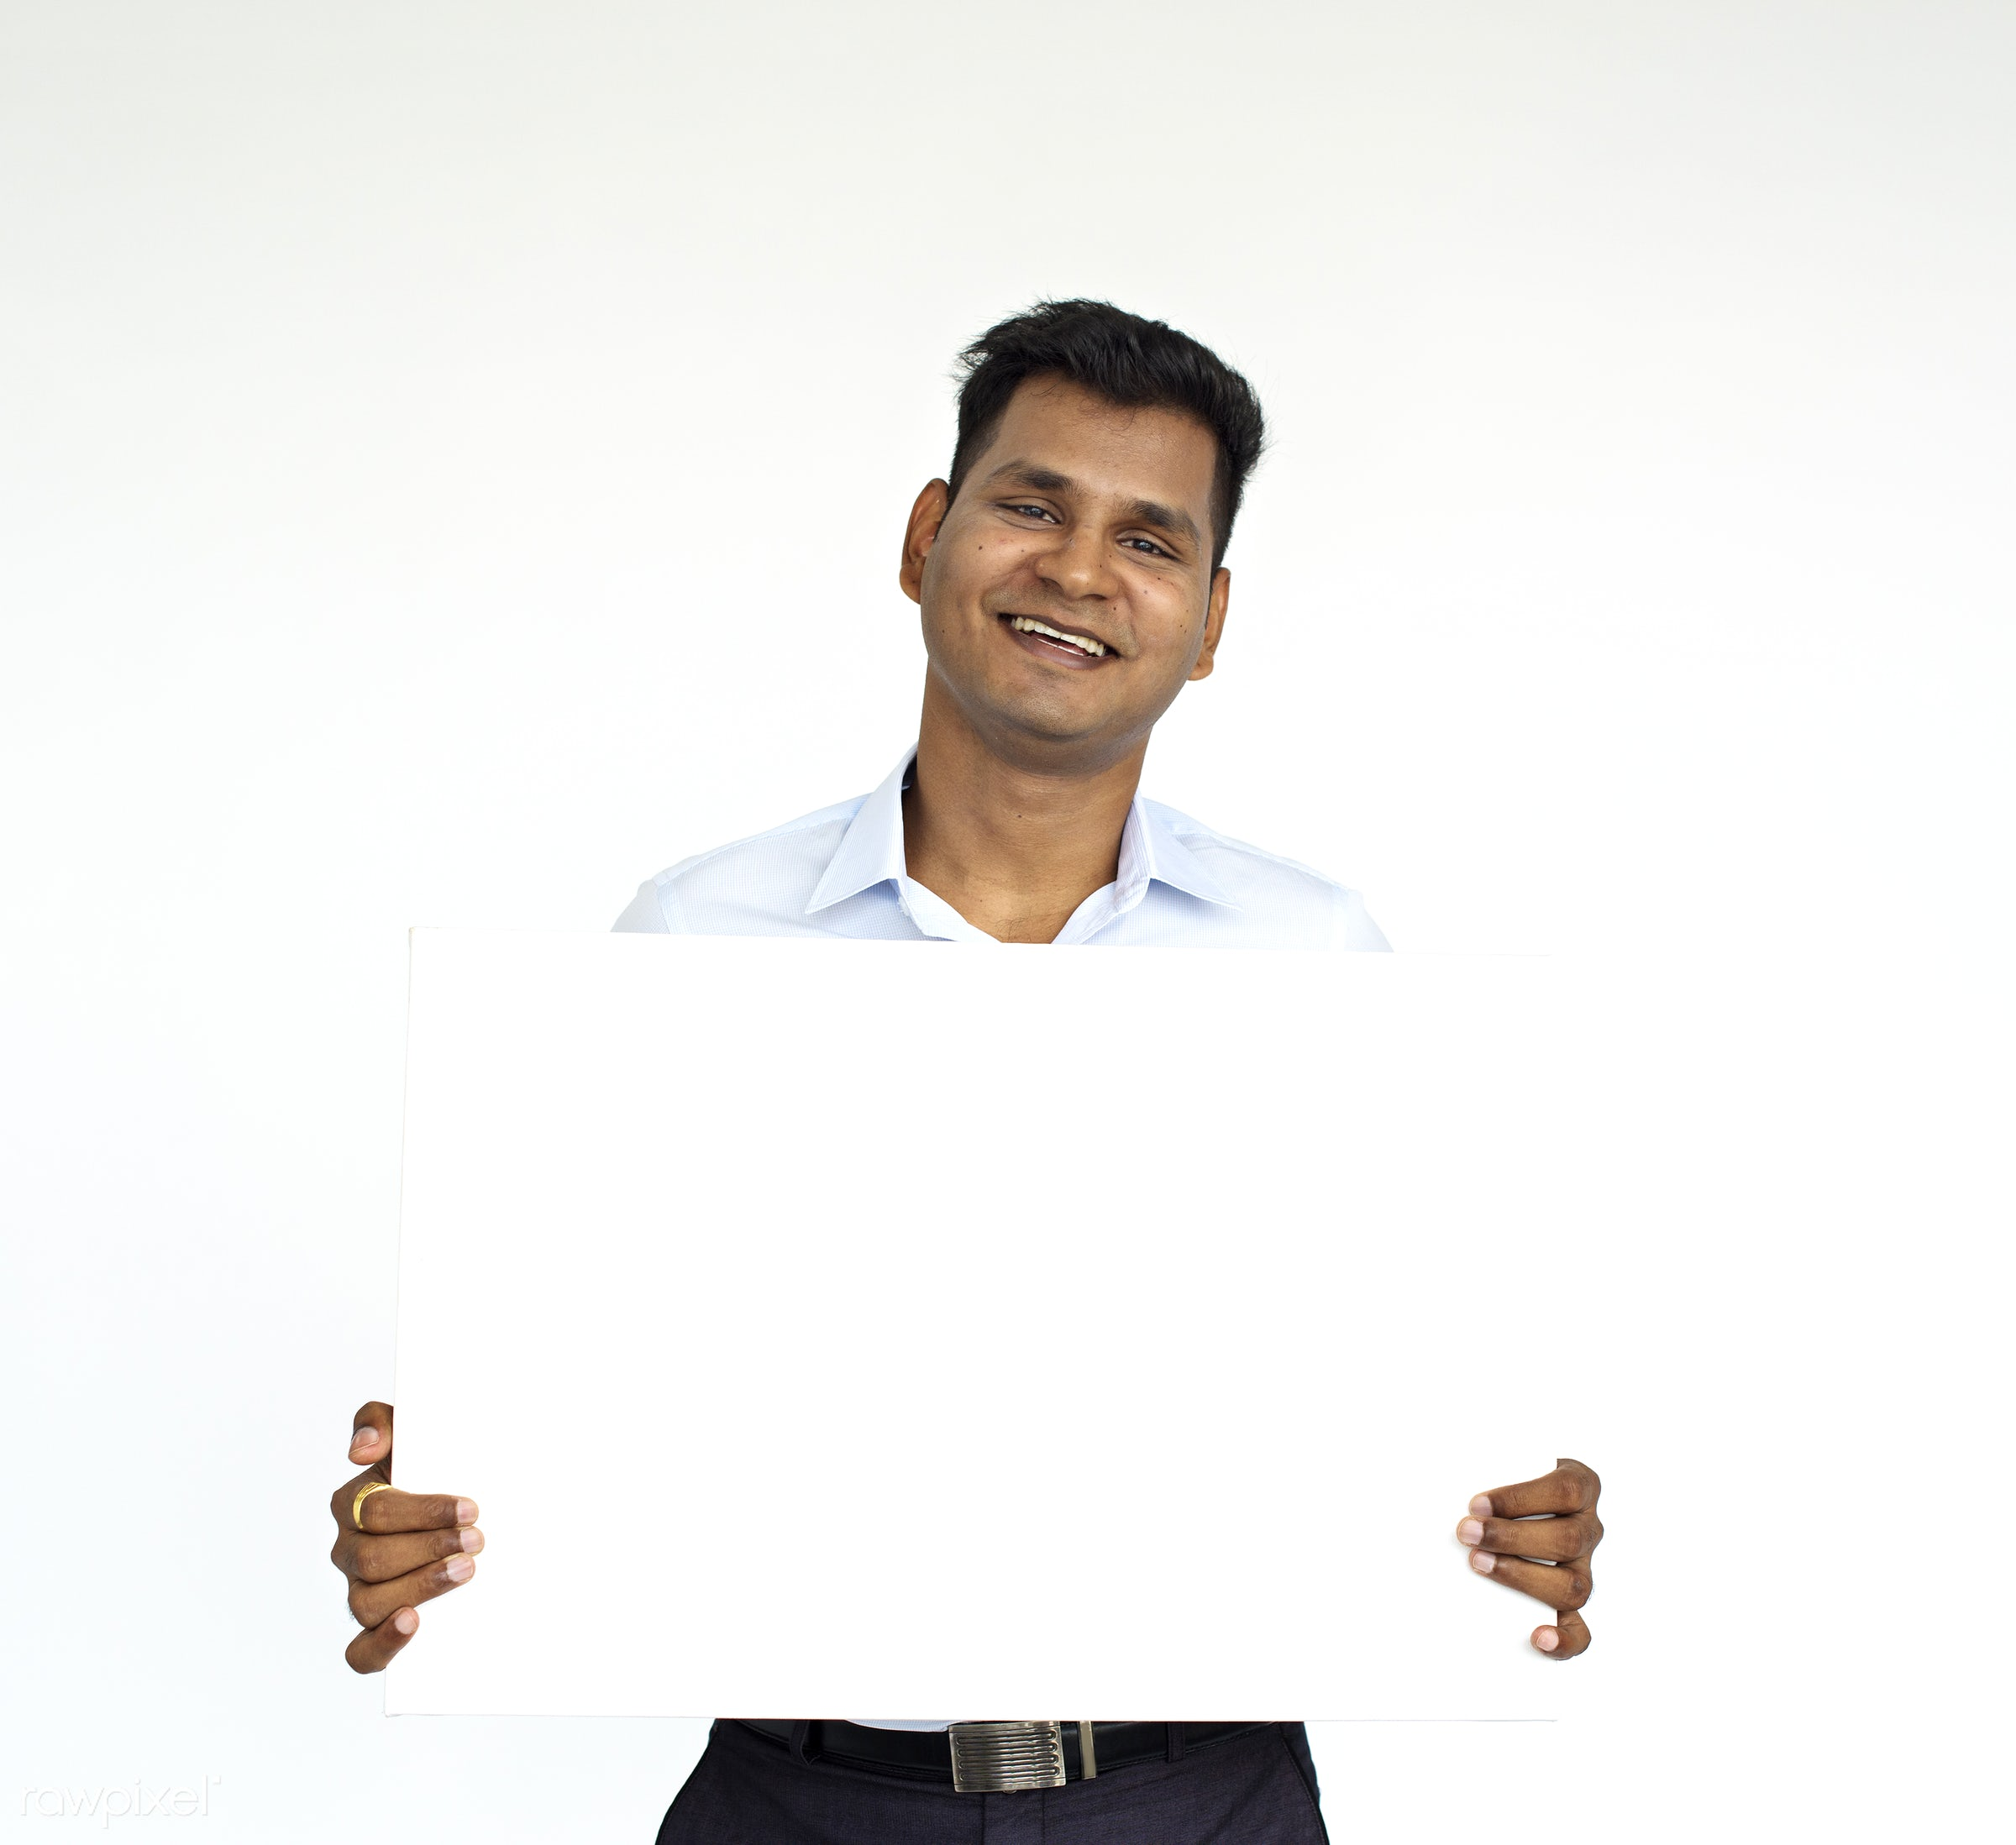 studio, expression, person, holding, copyspace, isolated on white, indian ethnicity, advertising, people, placard, casual,...